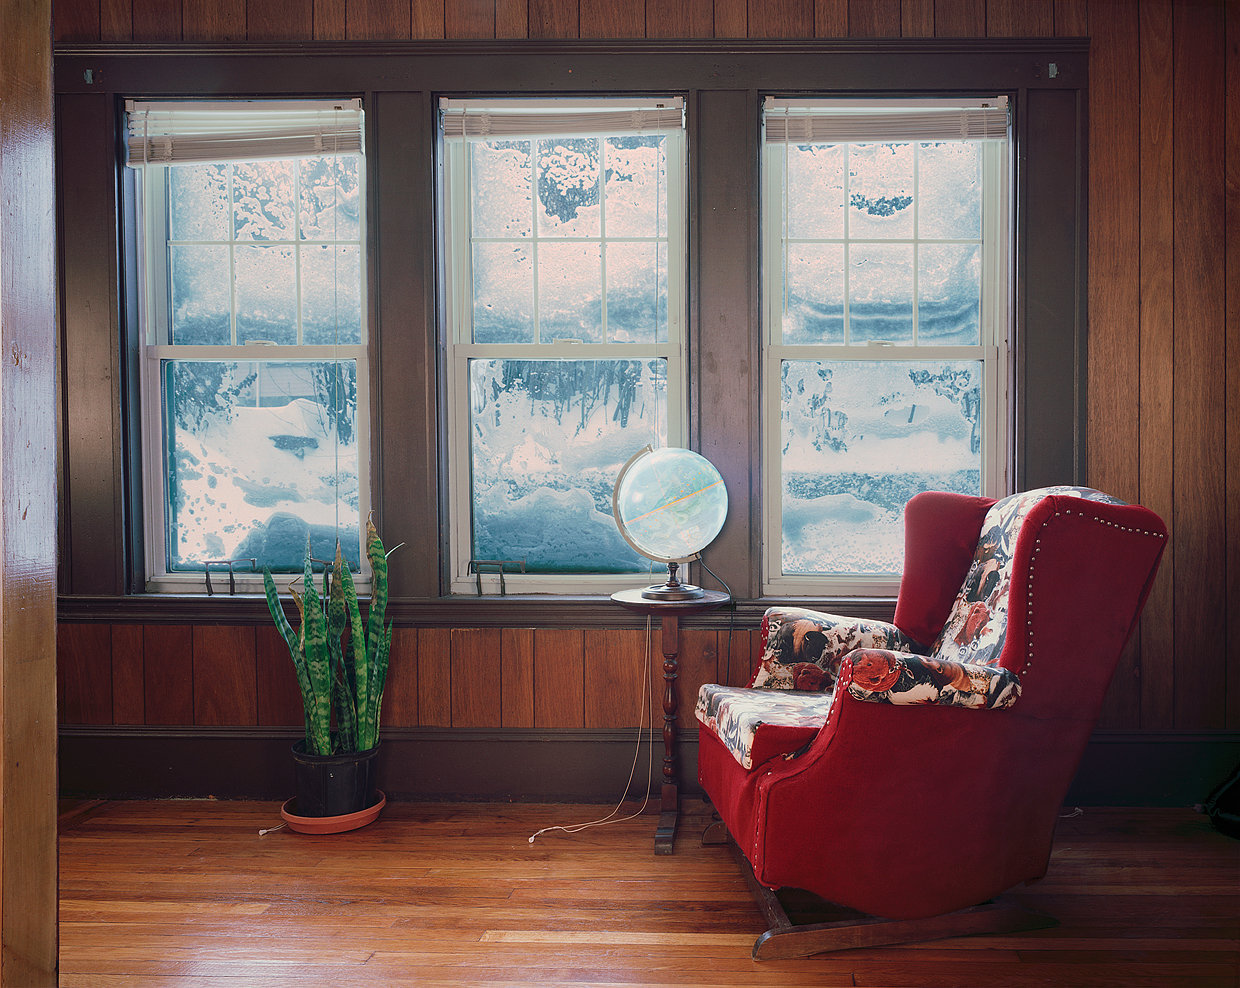 Untitled Interior (blizzard), 2005